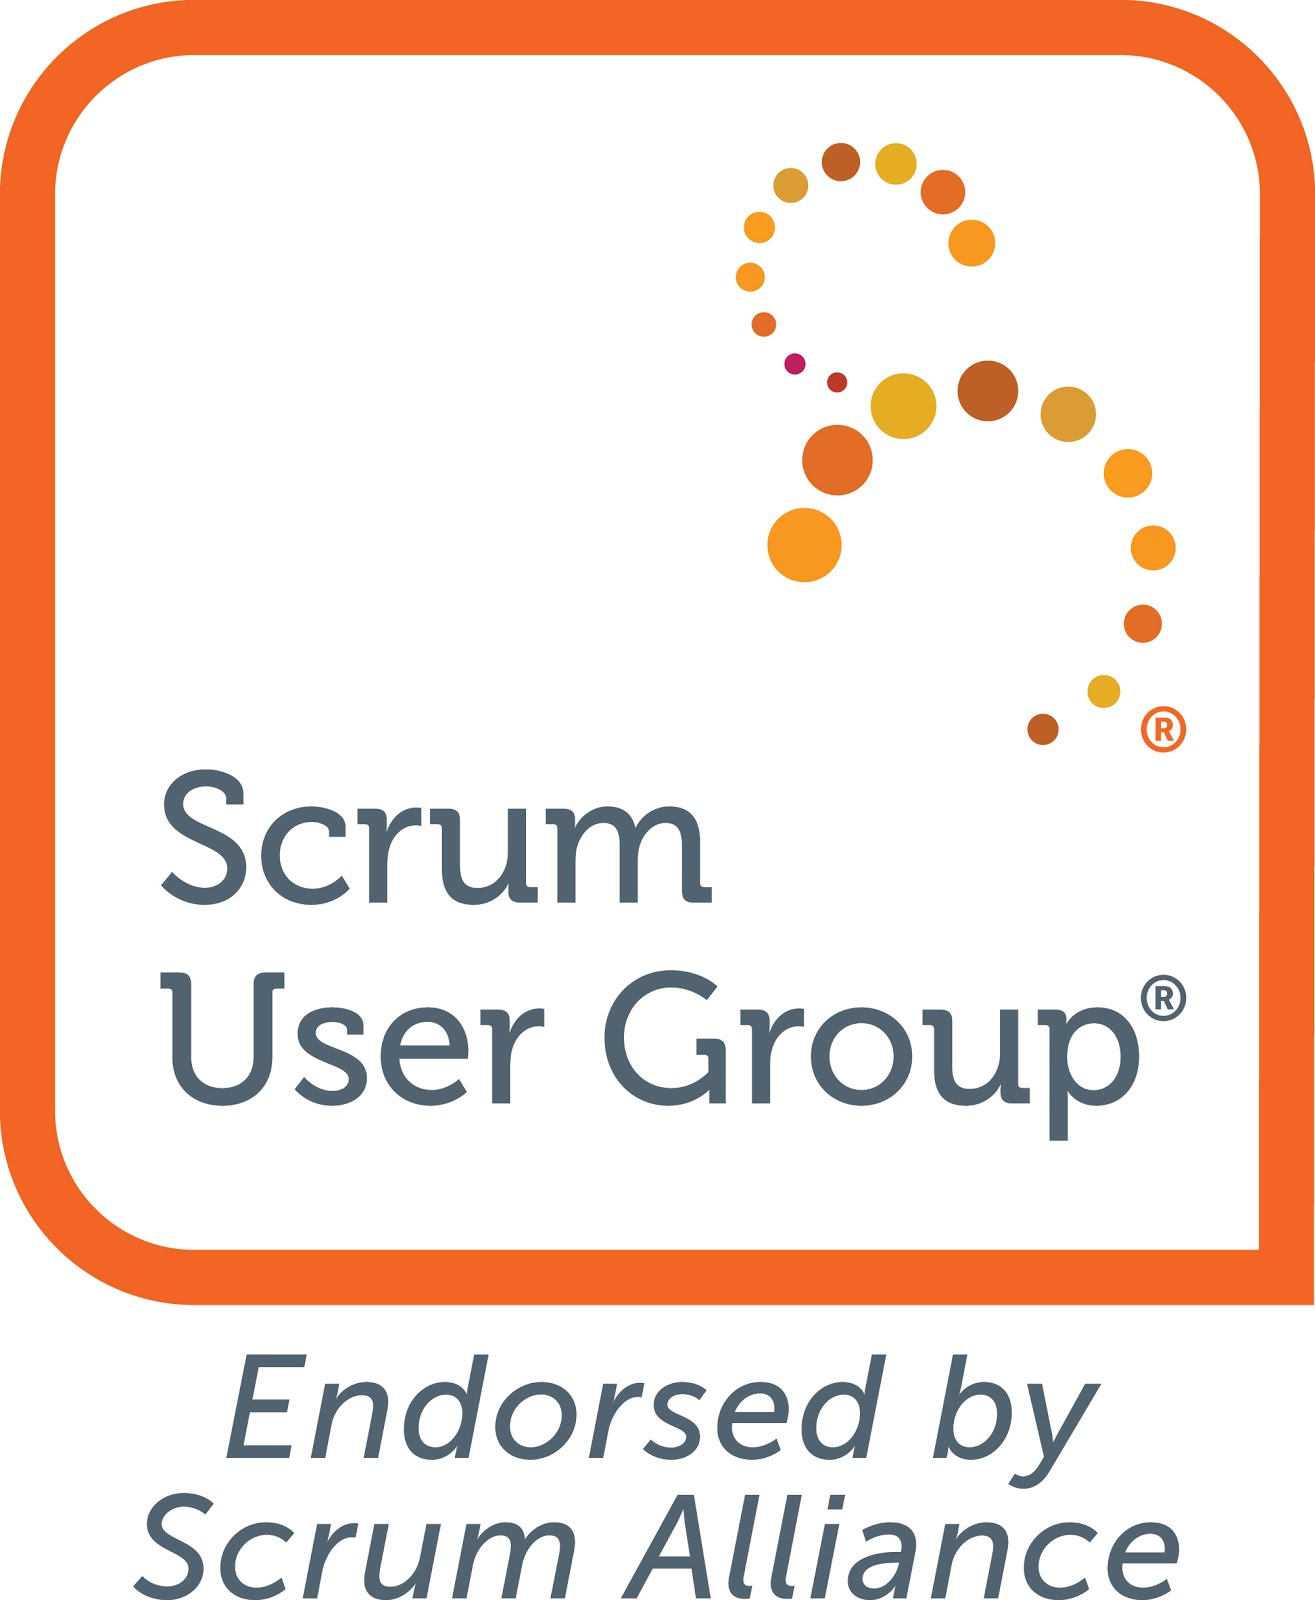 Scrum User Group